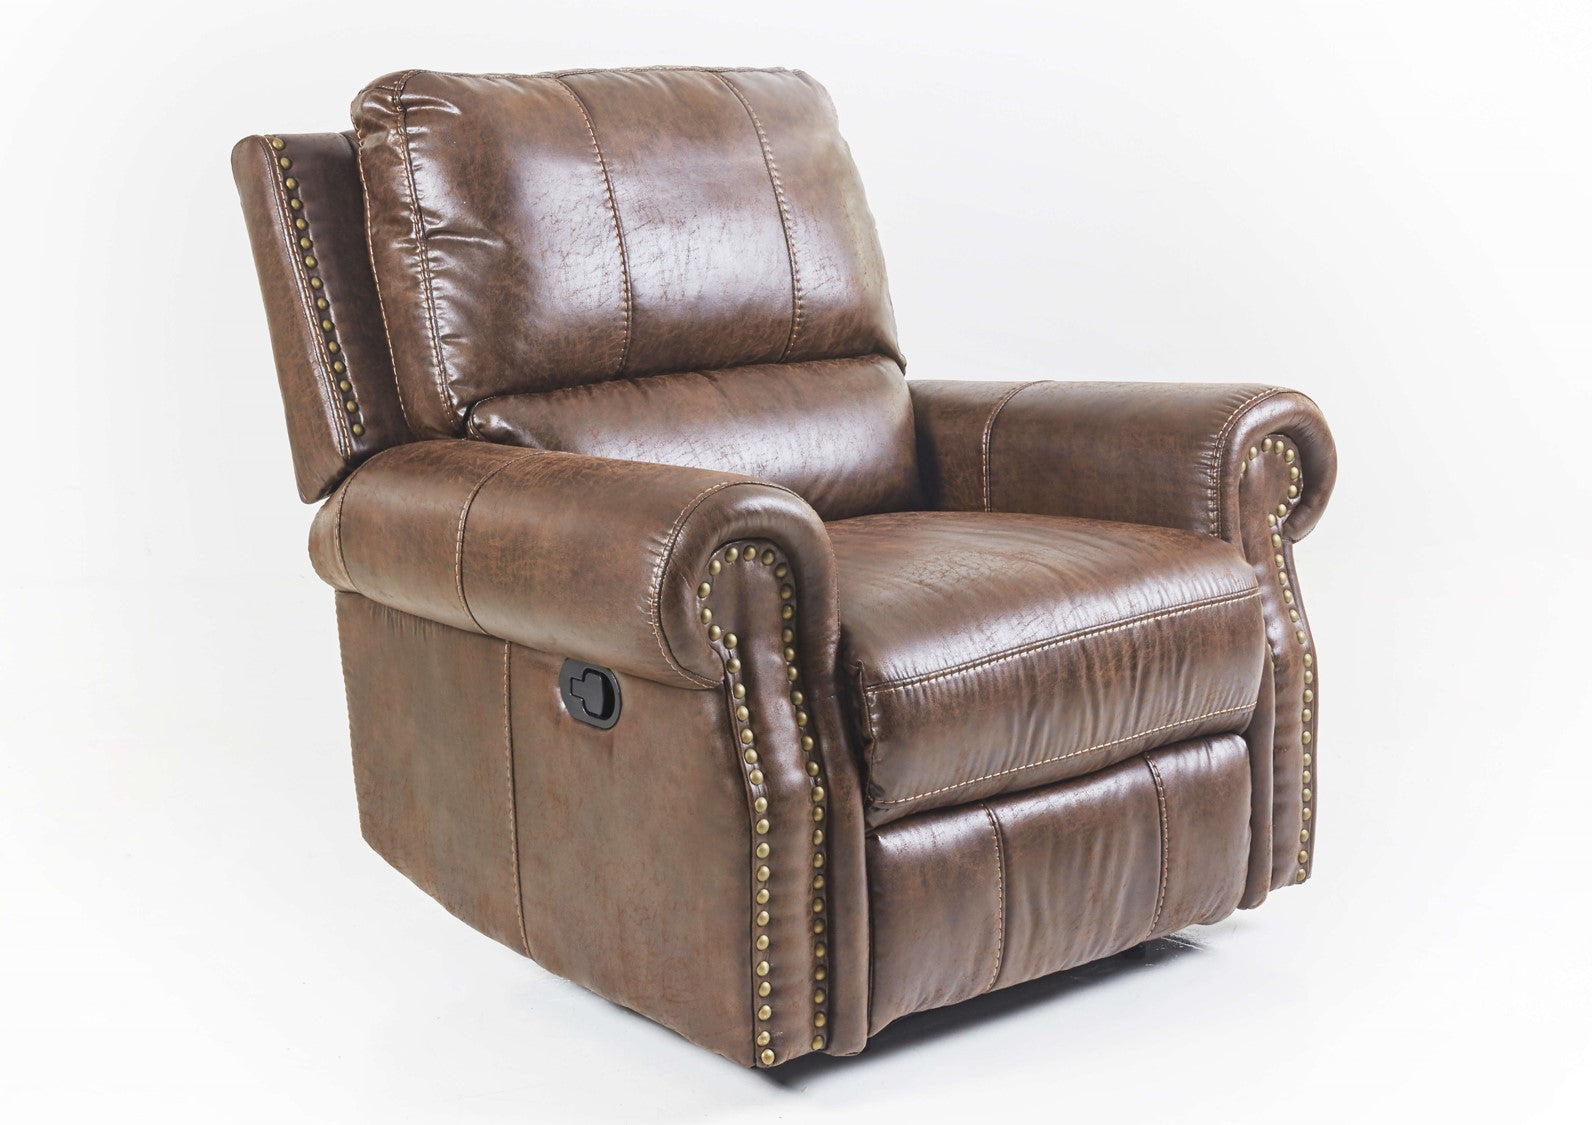 Cortina │ Manual Recliner Armchair More Than Just A Sofa